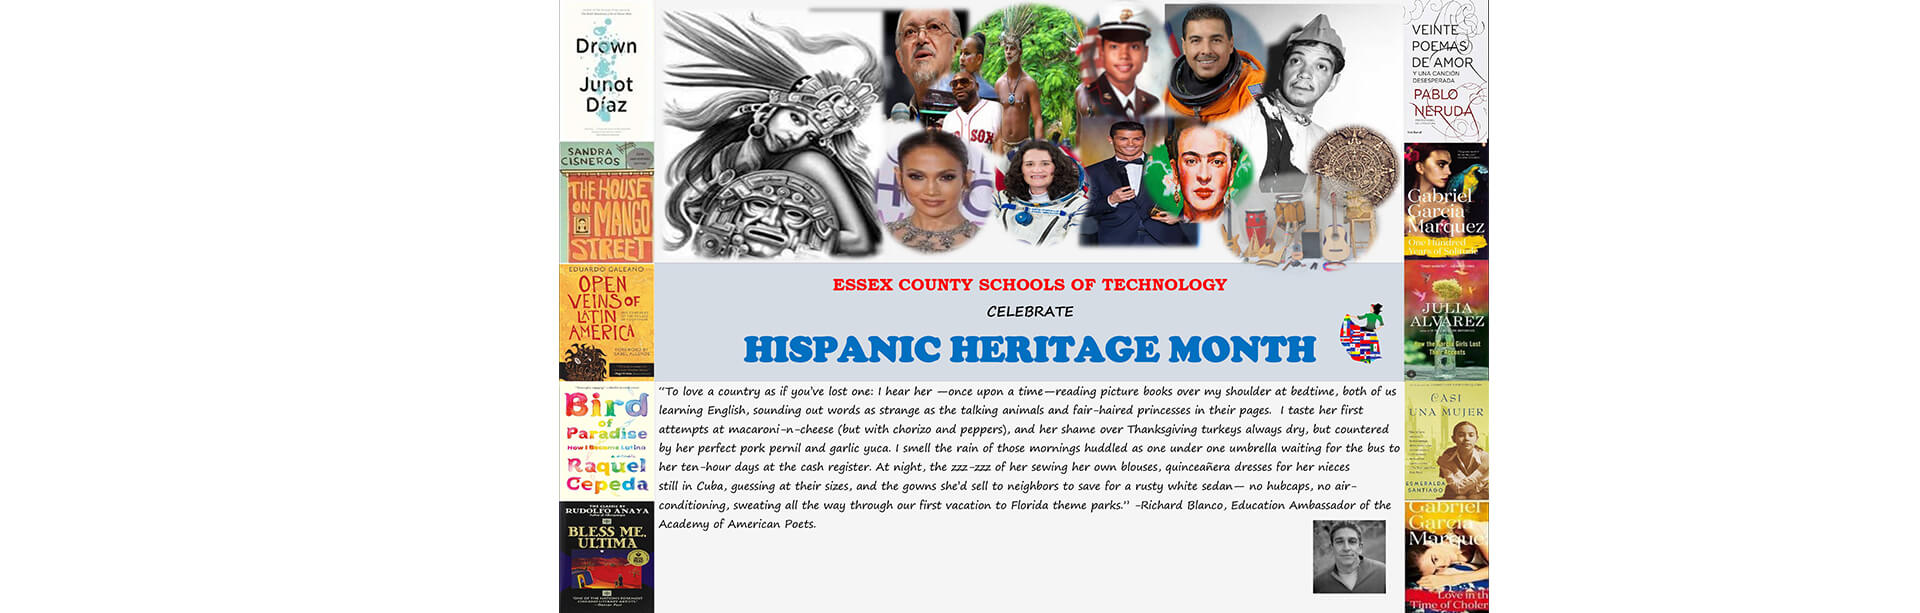 Essex County Schools of Technology